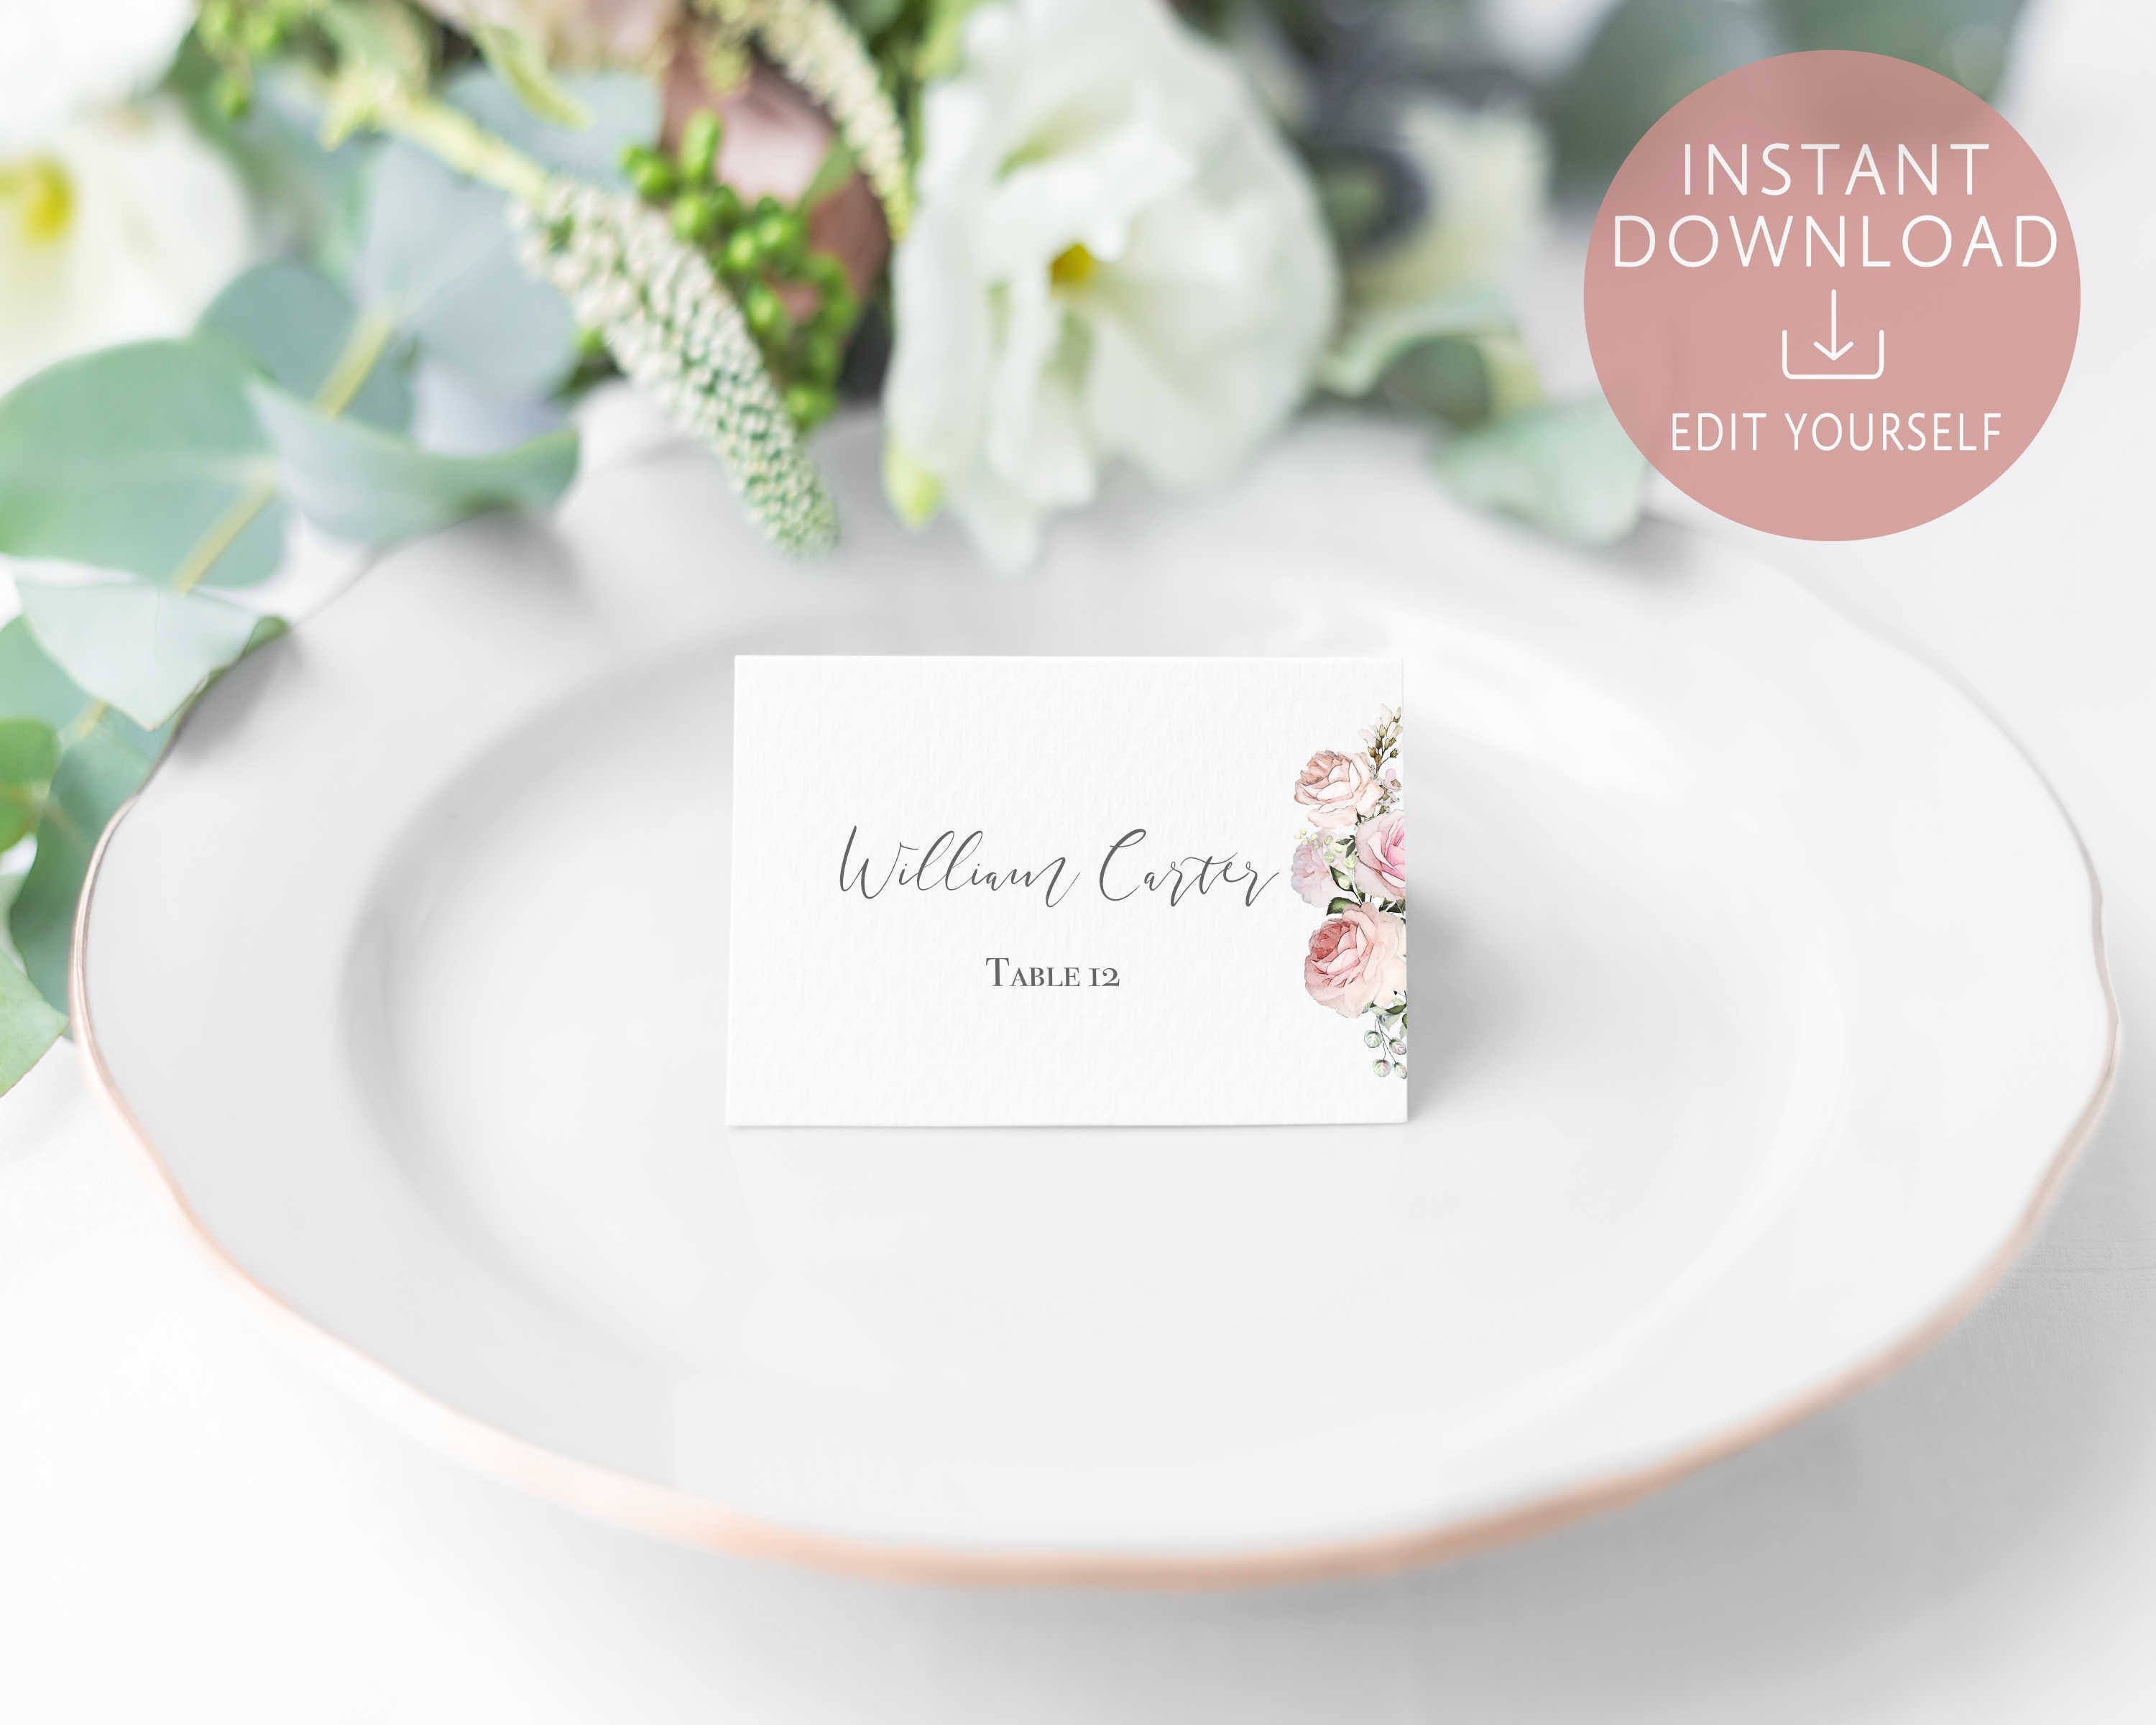 005 Simple Name Place Card Template High Def  Free Download Wedding Christma TableFull